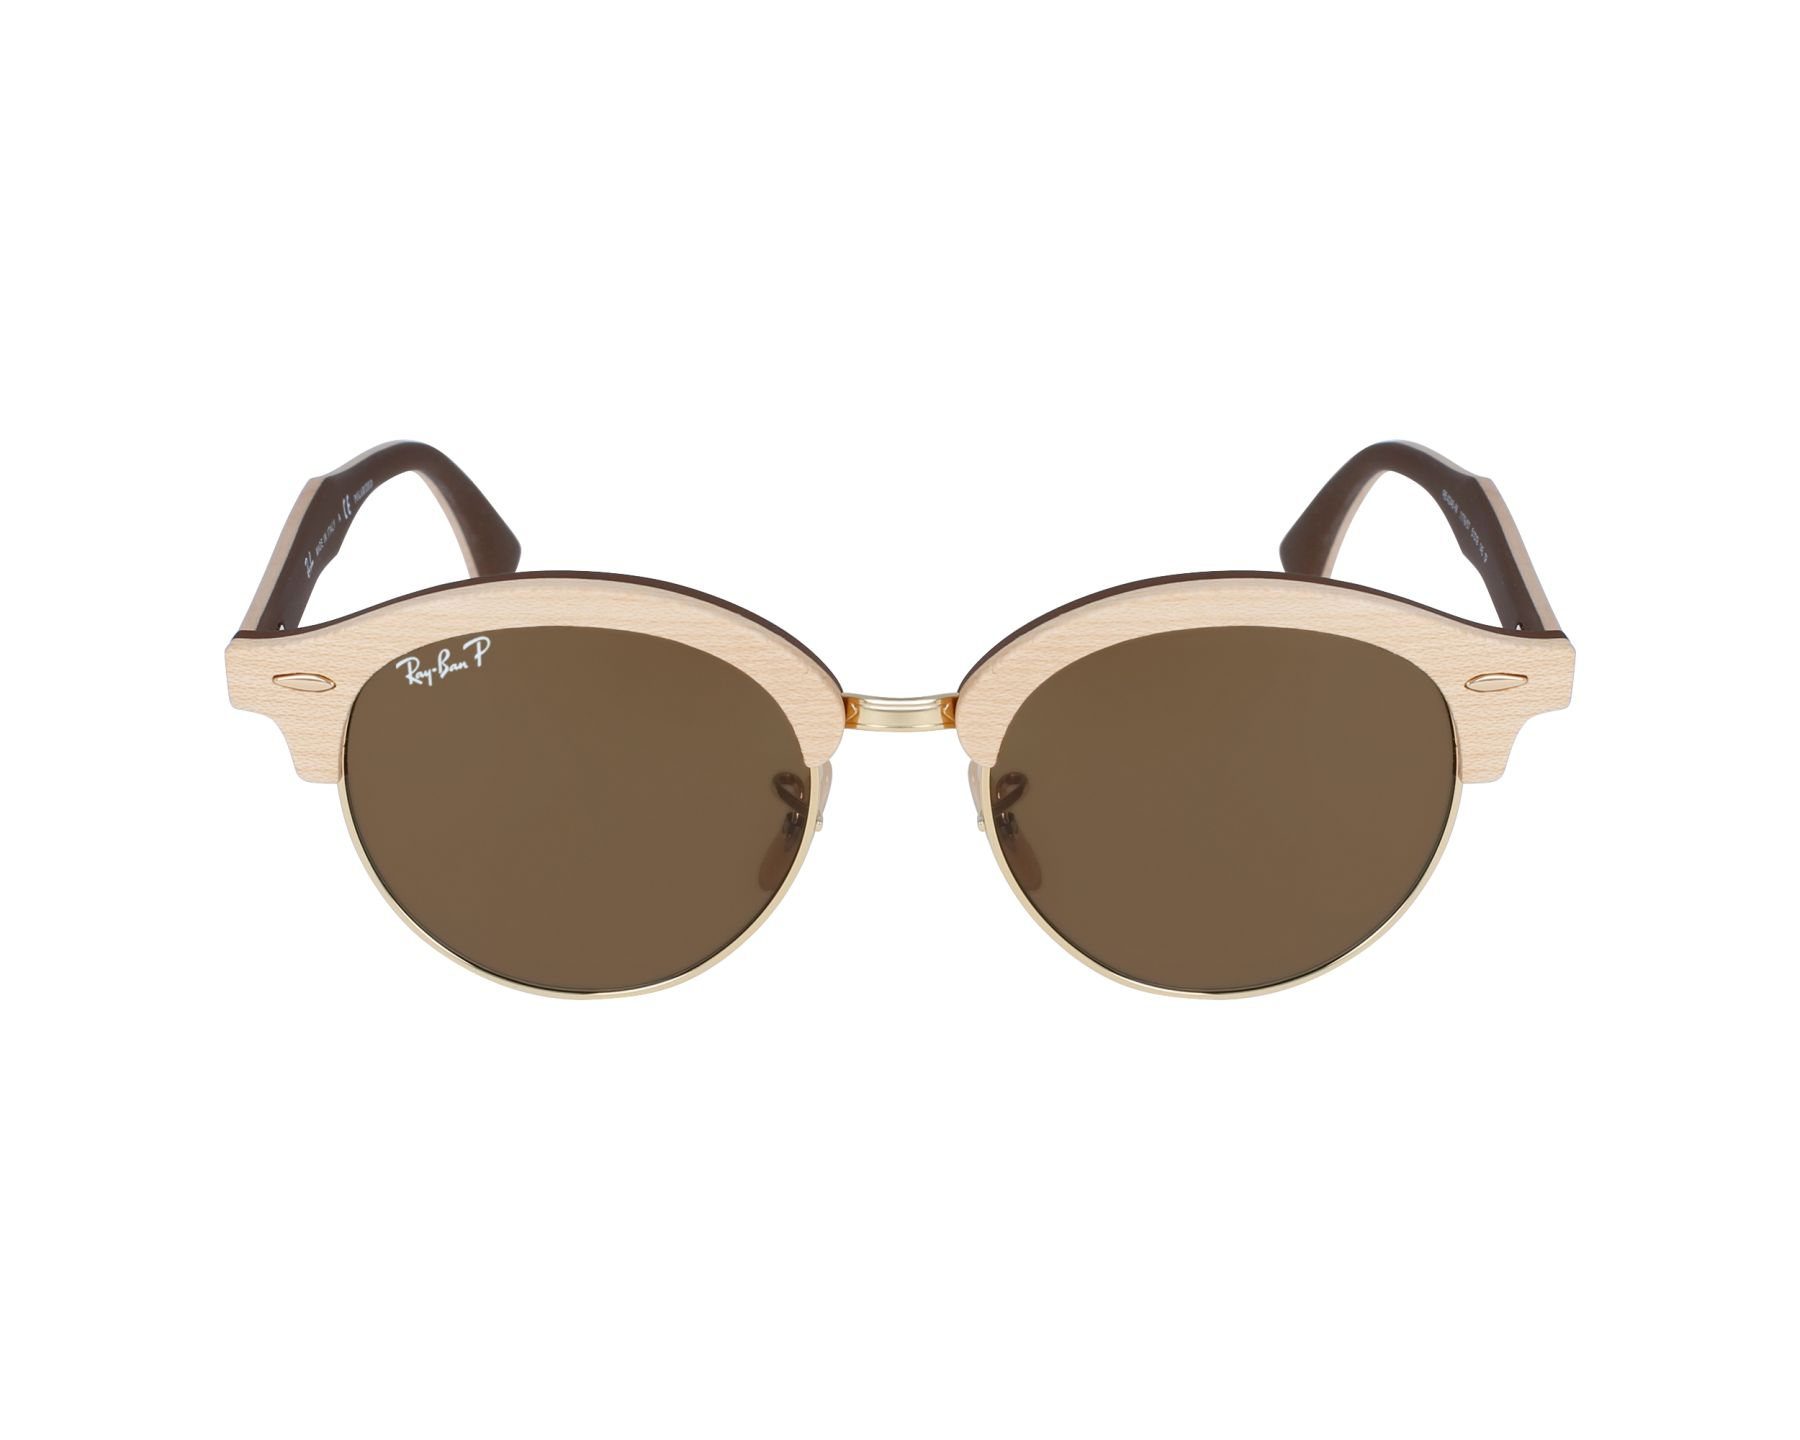 37a9613e70 Ray-Ban Sunglasses Clubmaster Wood RB-4246-M 1179 57